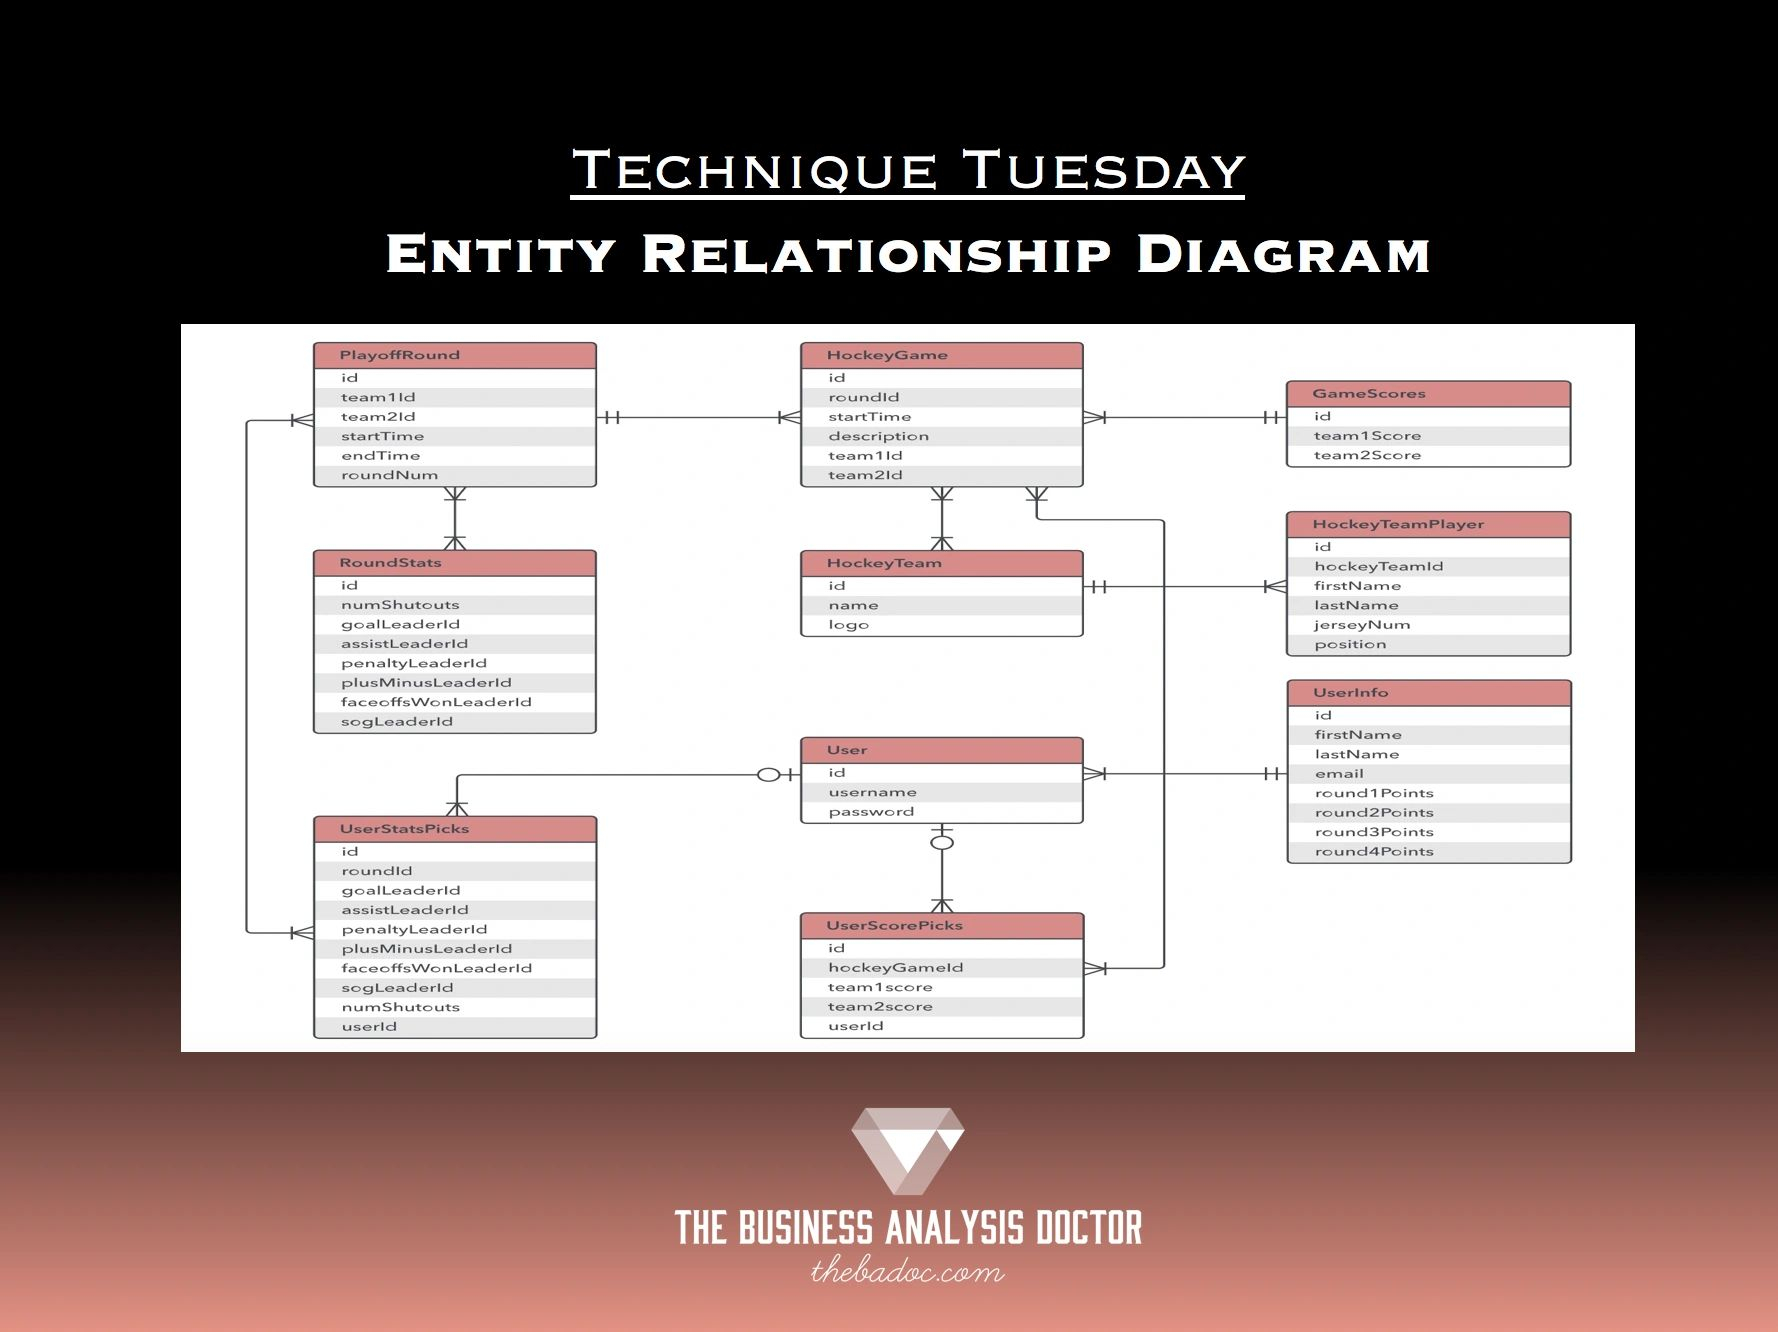 Entity Relationship Diagram for 1) In Er Diagrams Rectangles Are Used To Denote